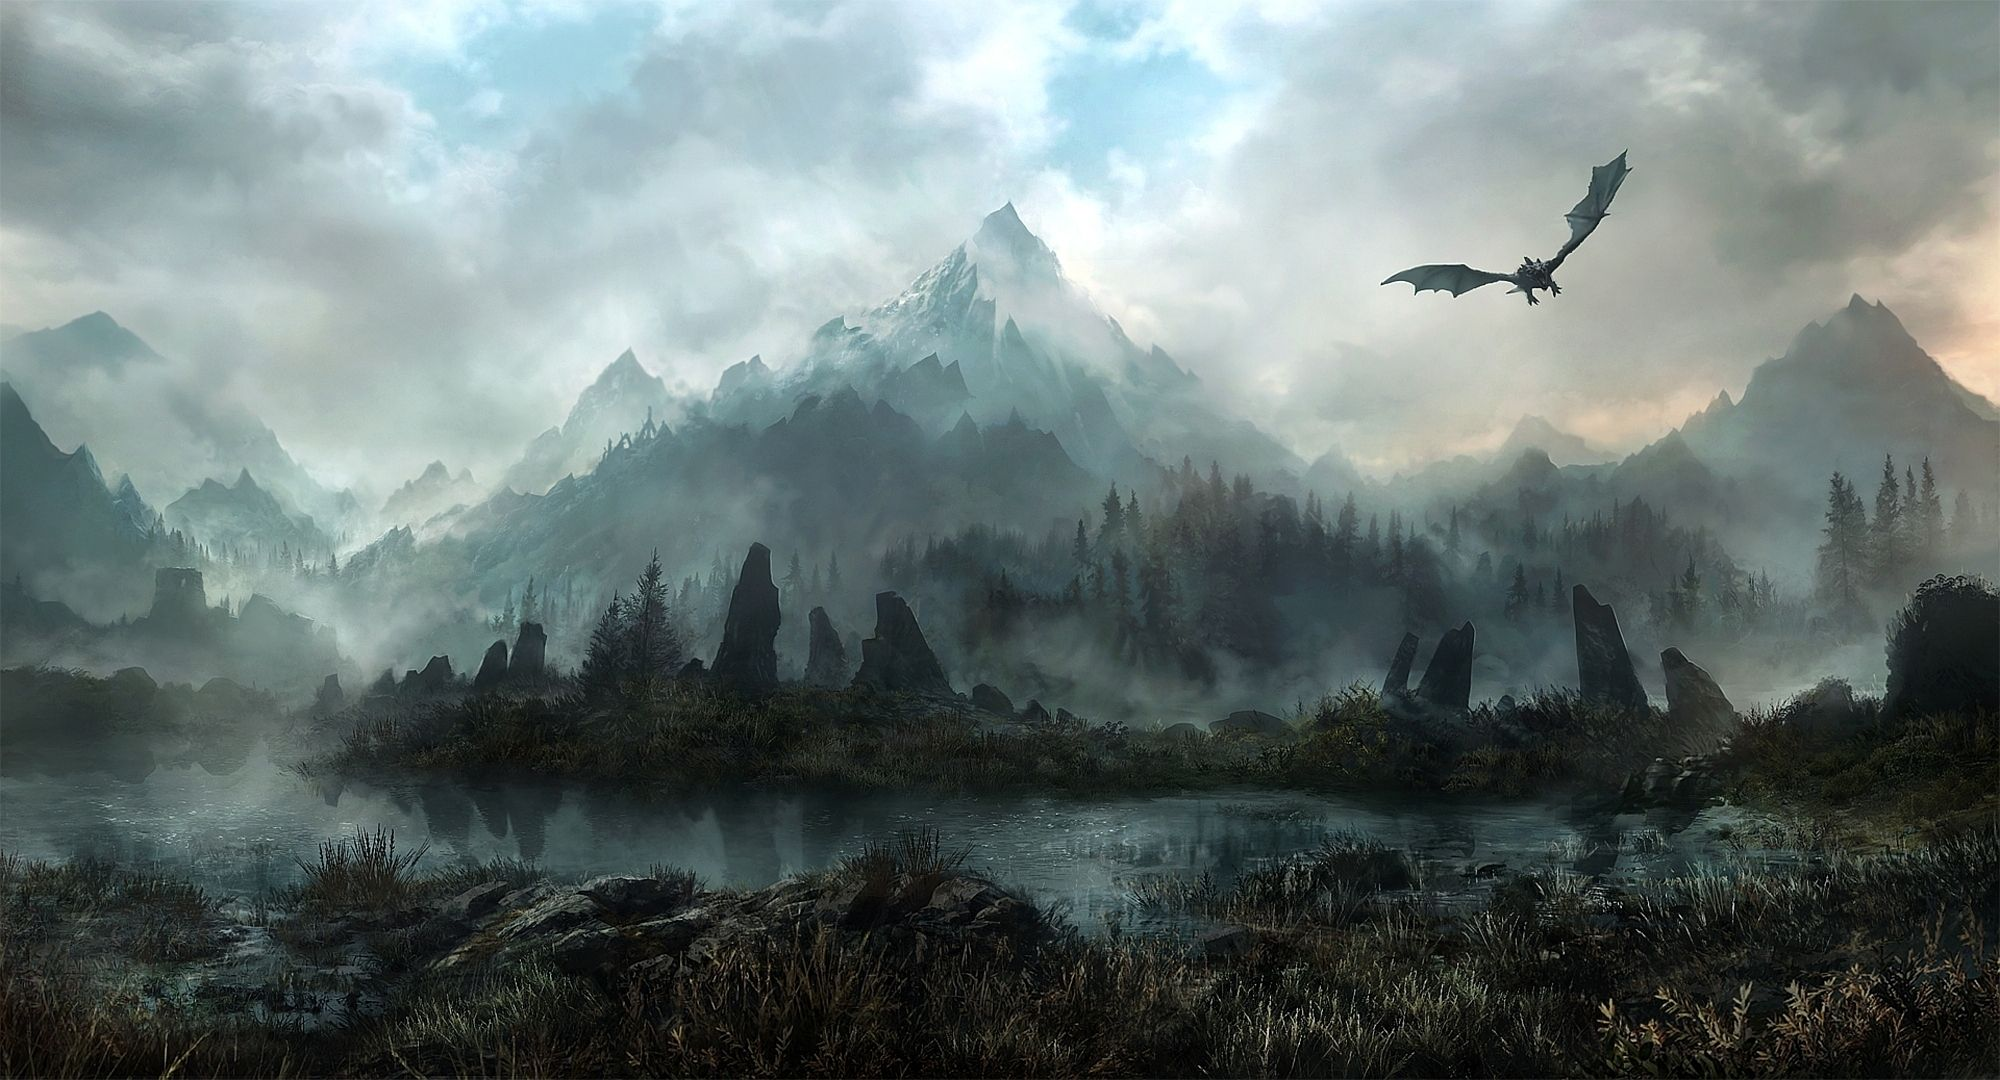 skyrim hd wallpaper, skyrim wallpaper 1920x1080